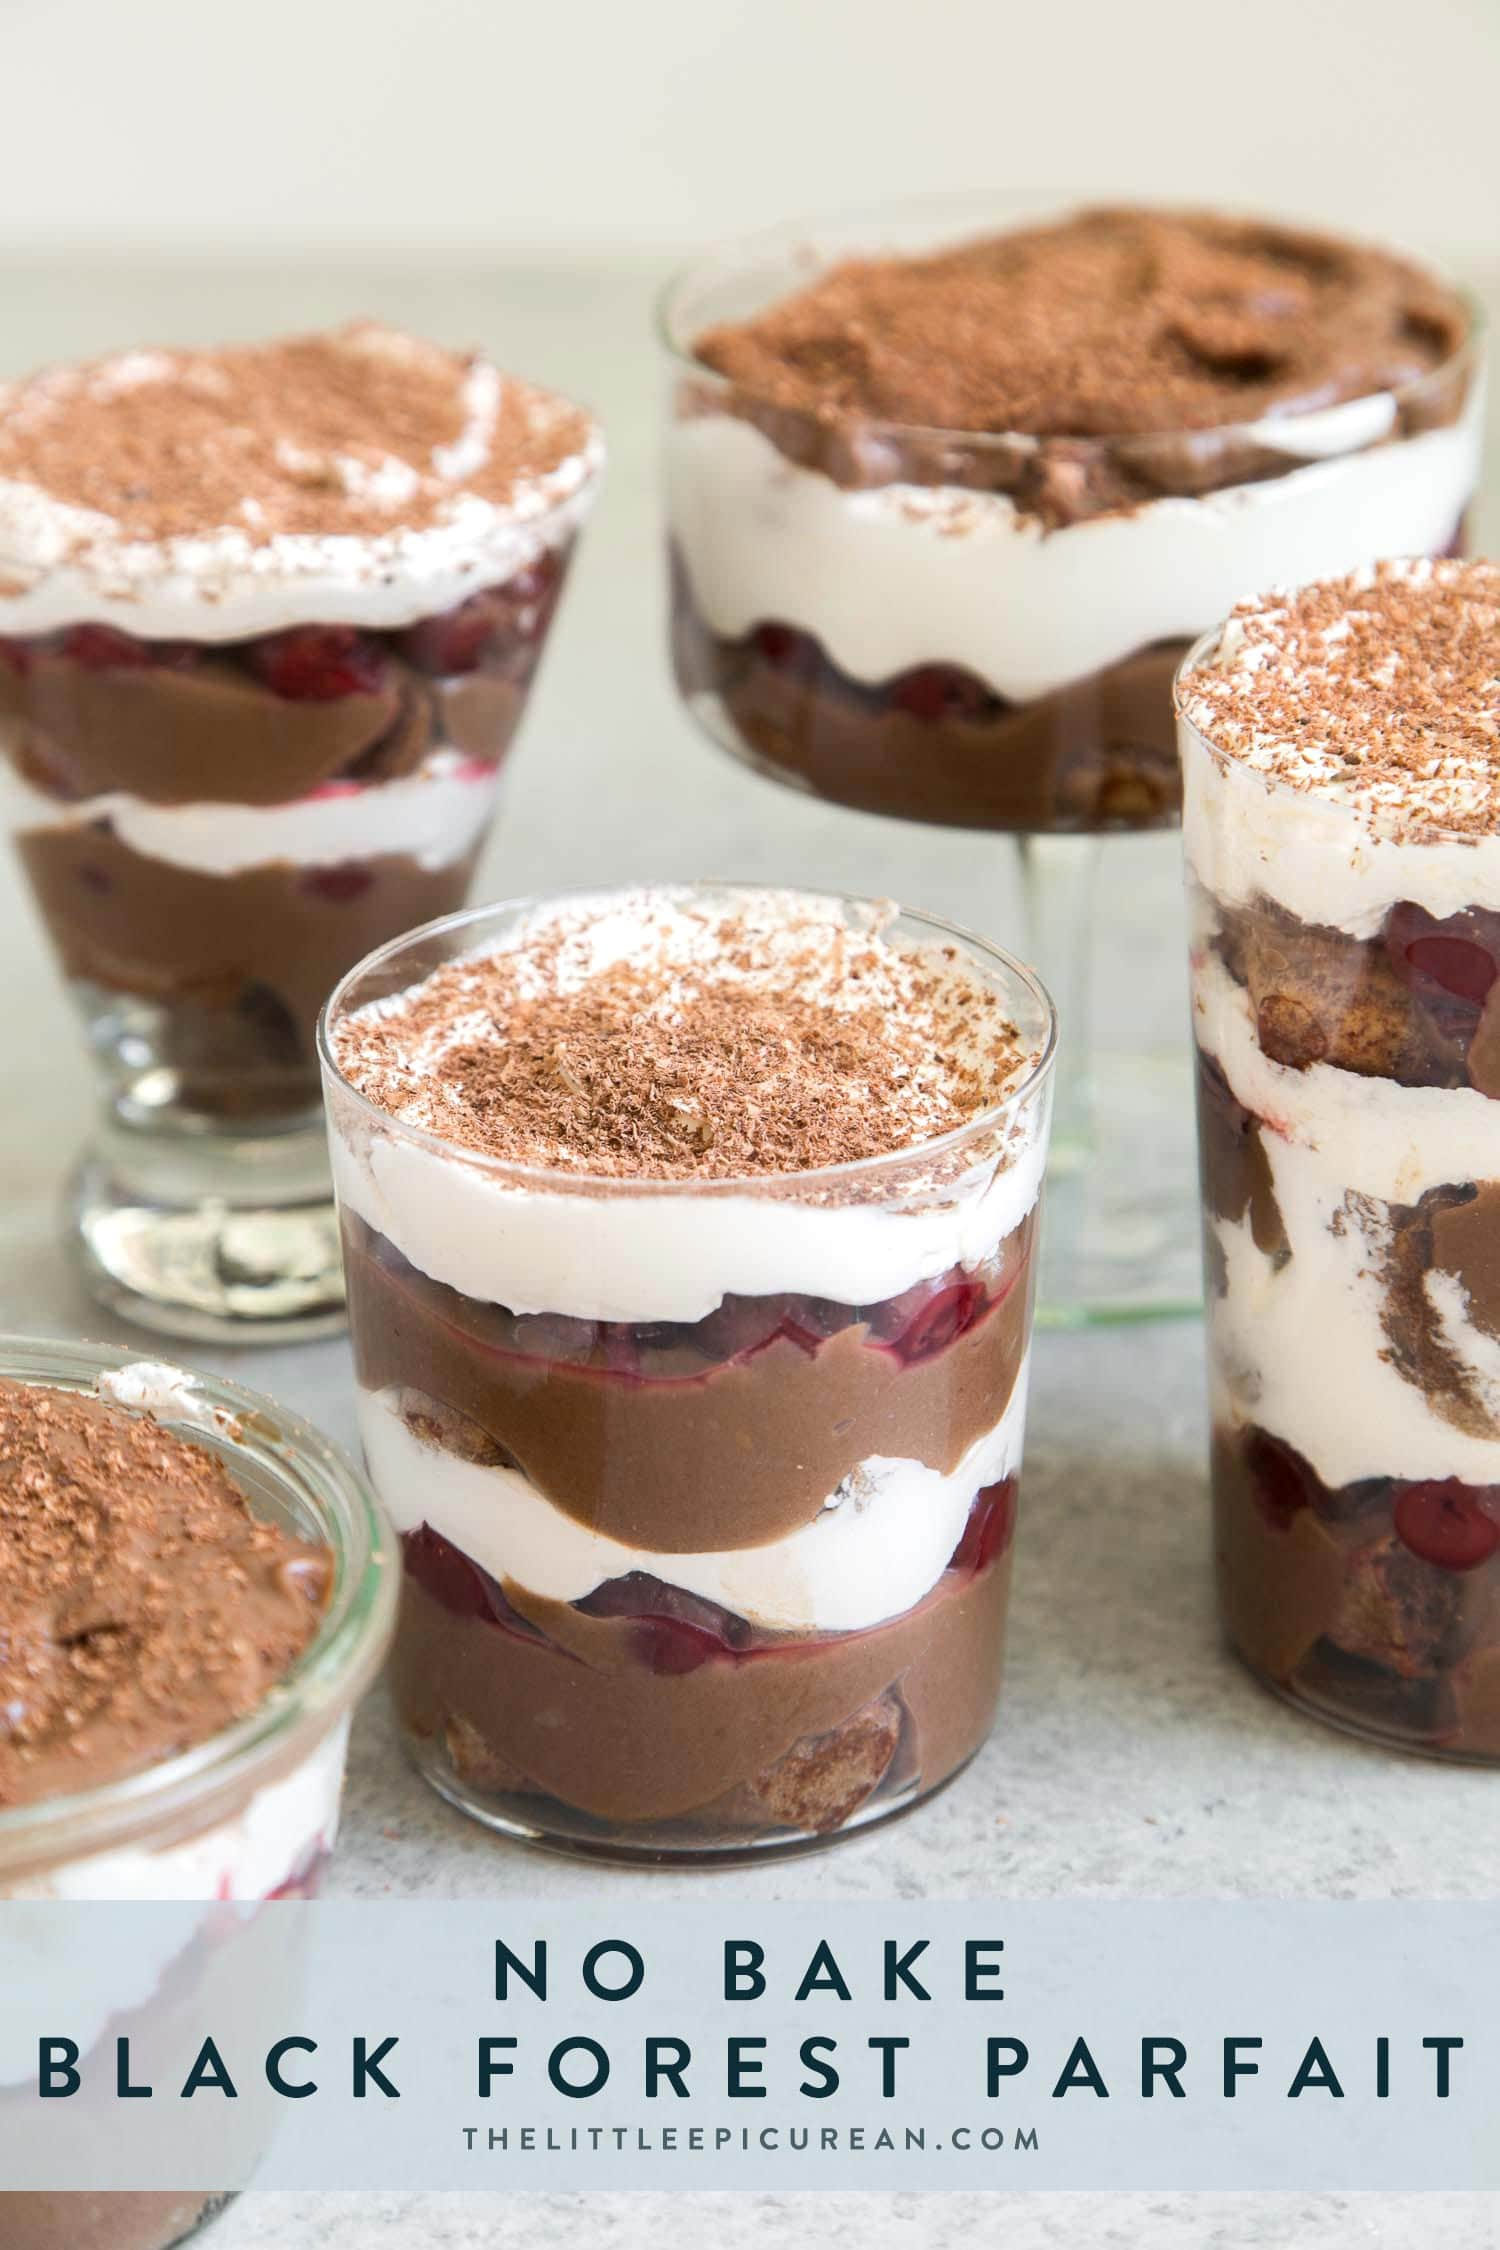 No Bake Black Forest Parfait